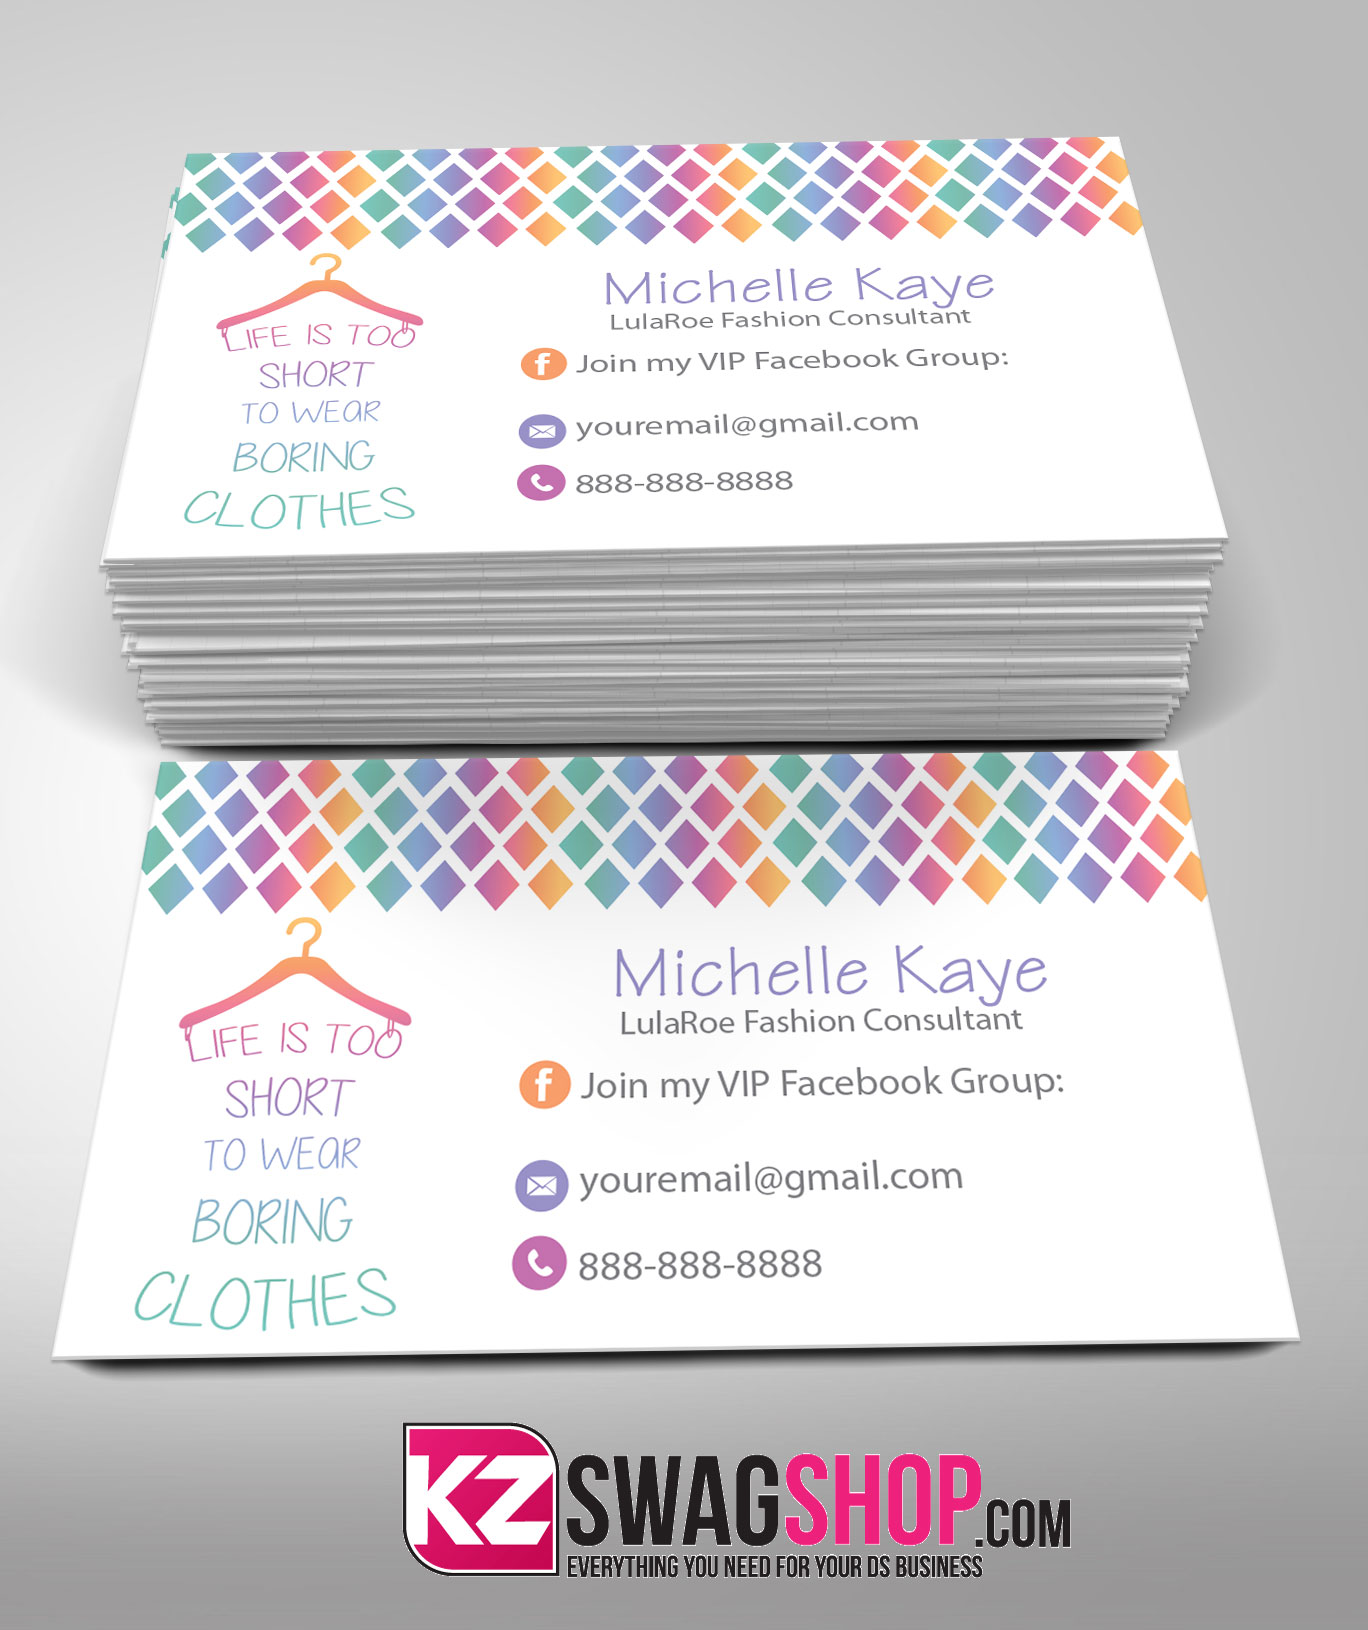 LulaRoe Business Cards - 7 · KZ Creative Services · Online Store ...